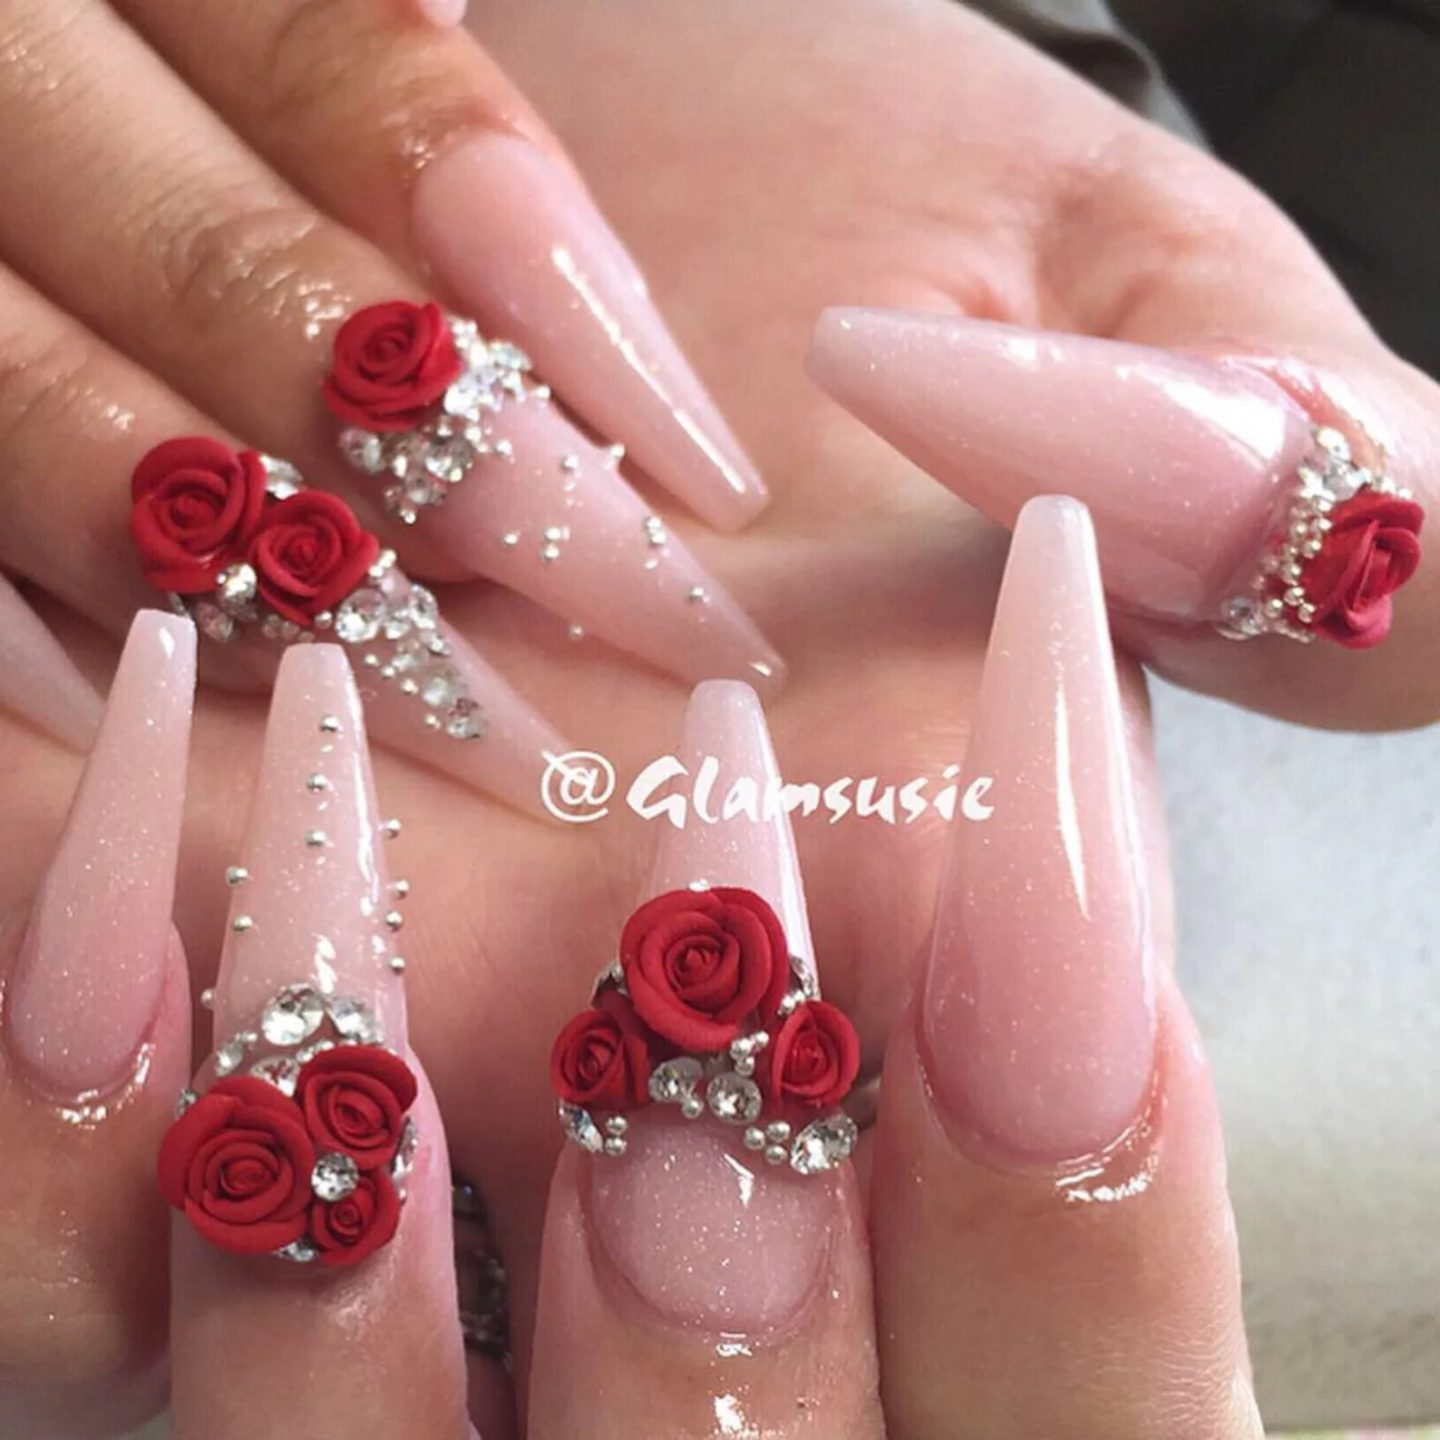 Cute nude stiletto nails with 3D red roses